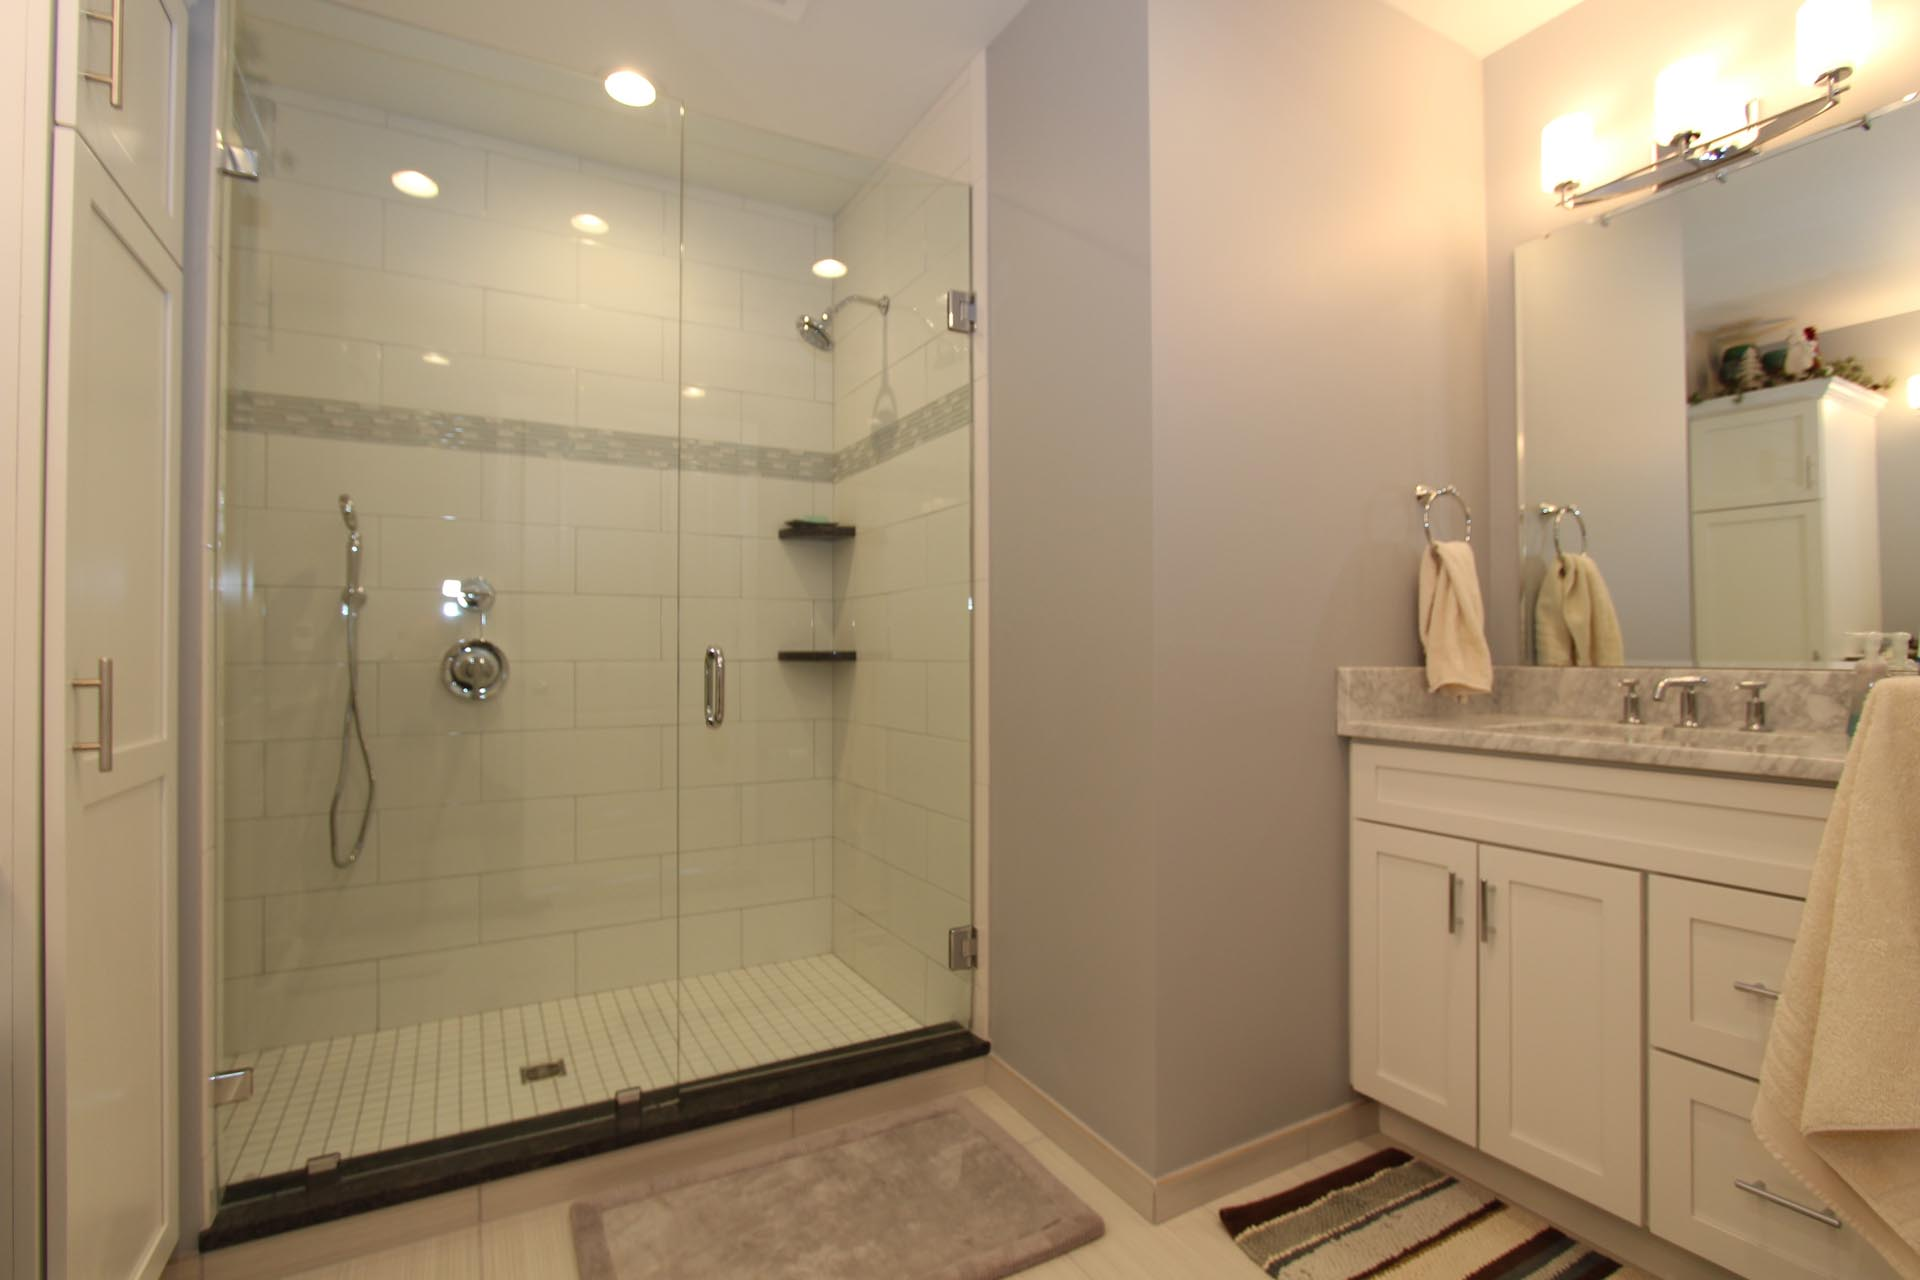 Bathroom Sink and Shower | 9 East Main St | Uptown Bay City